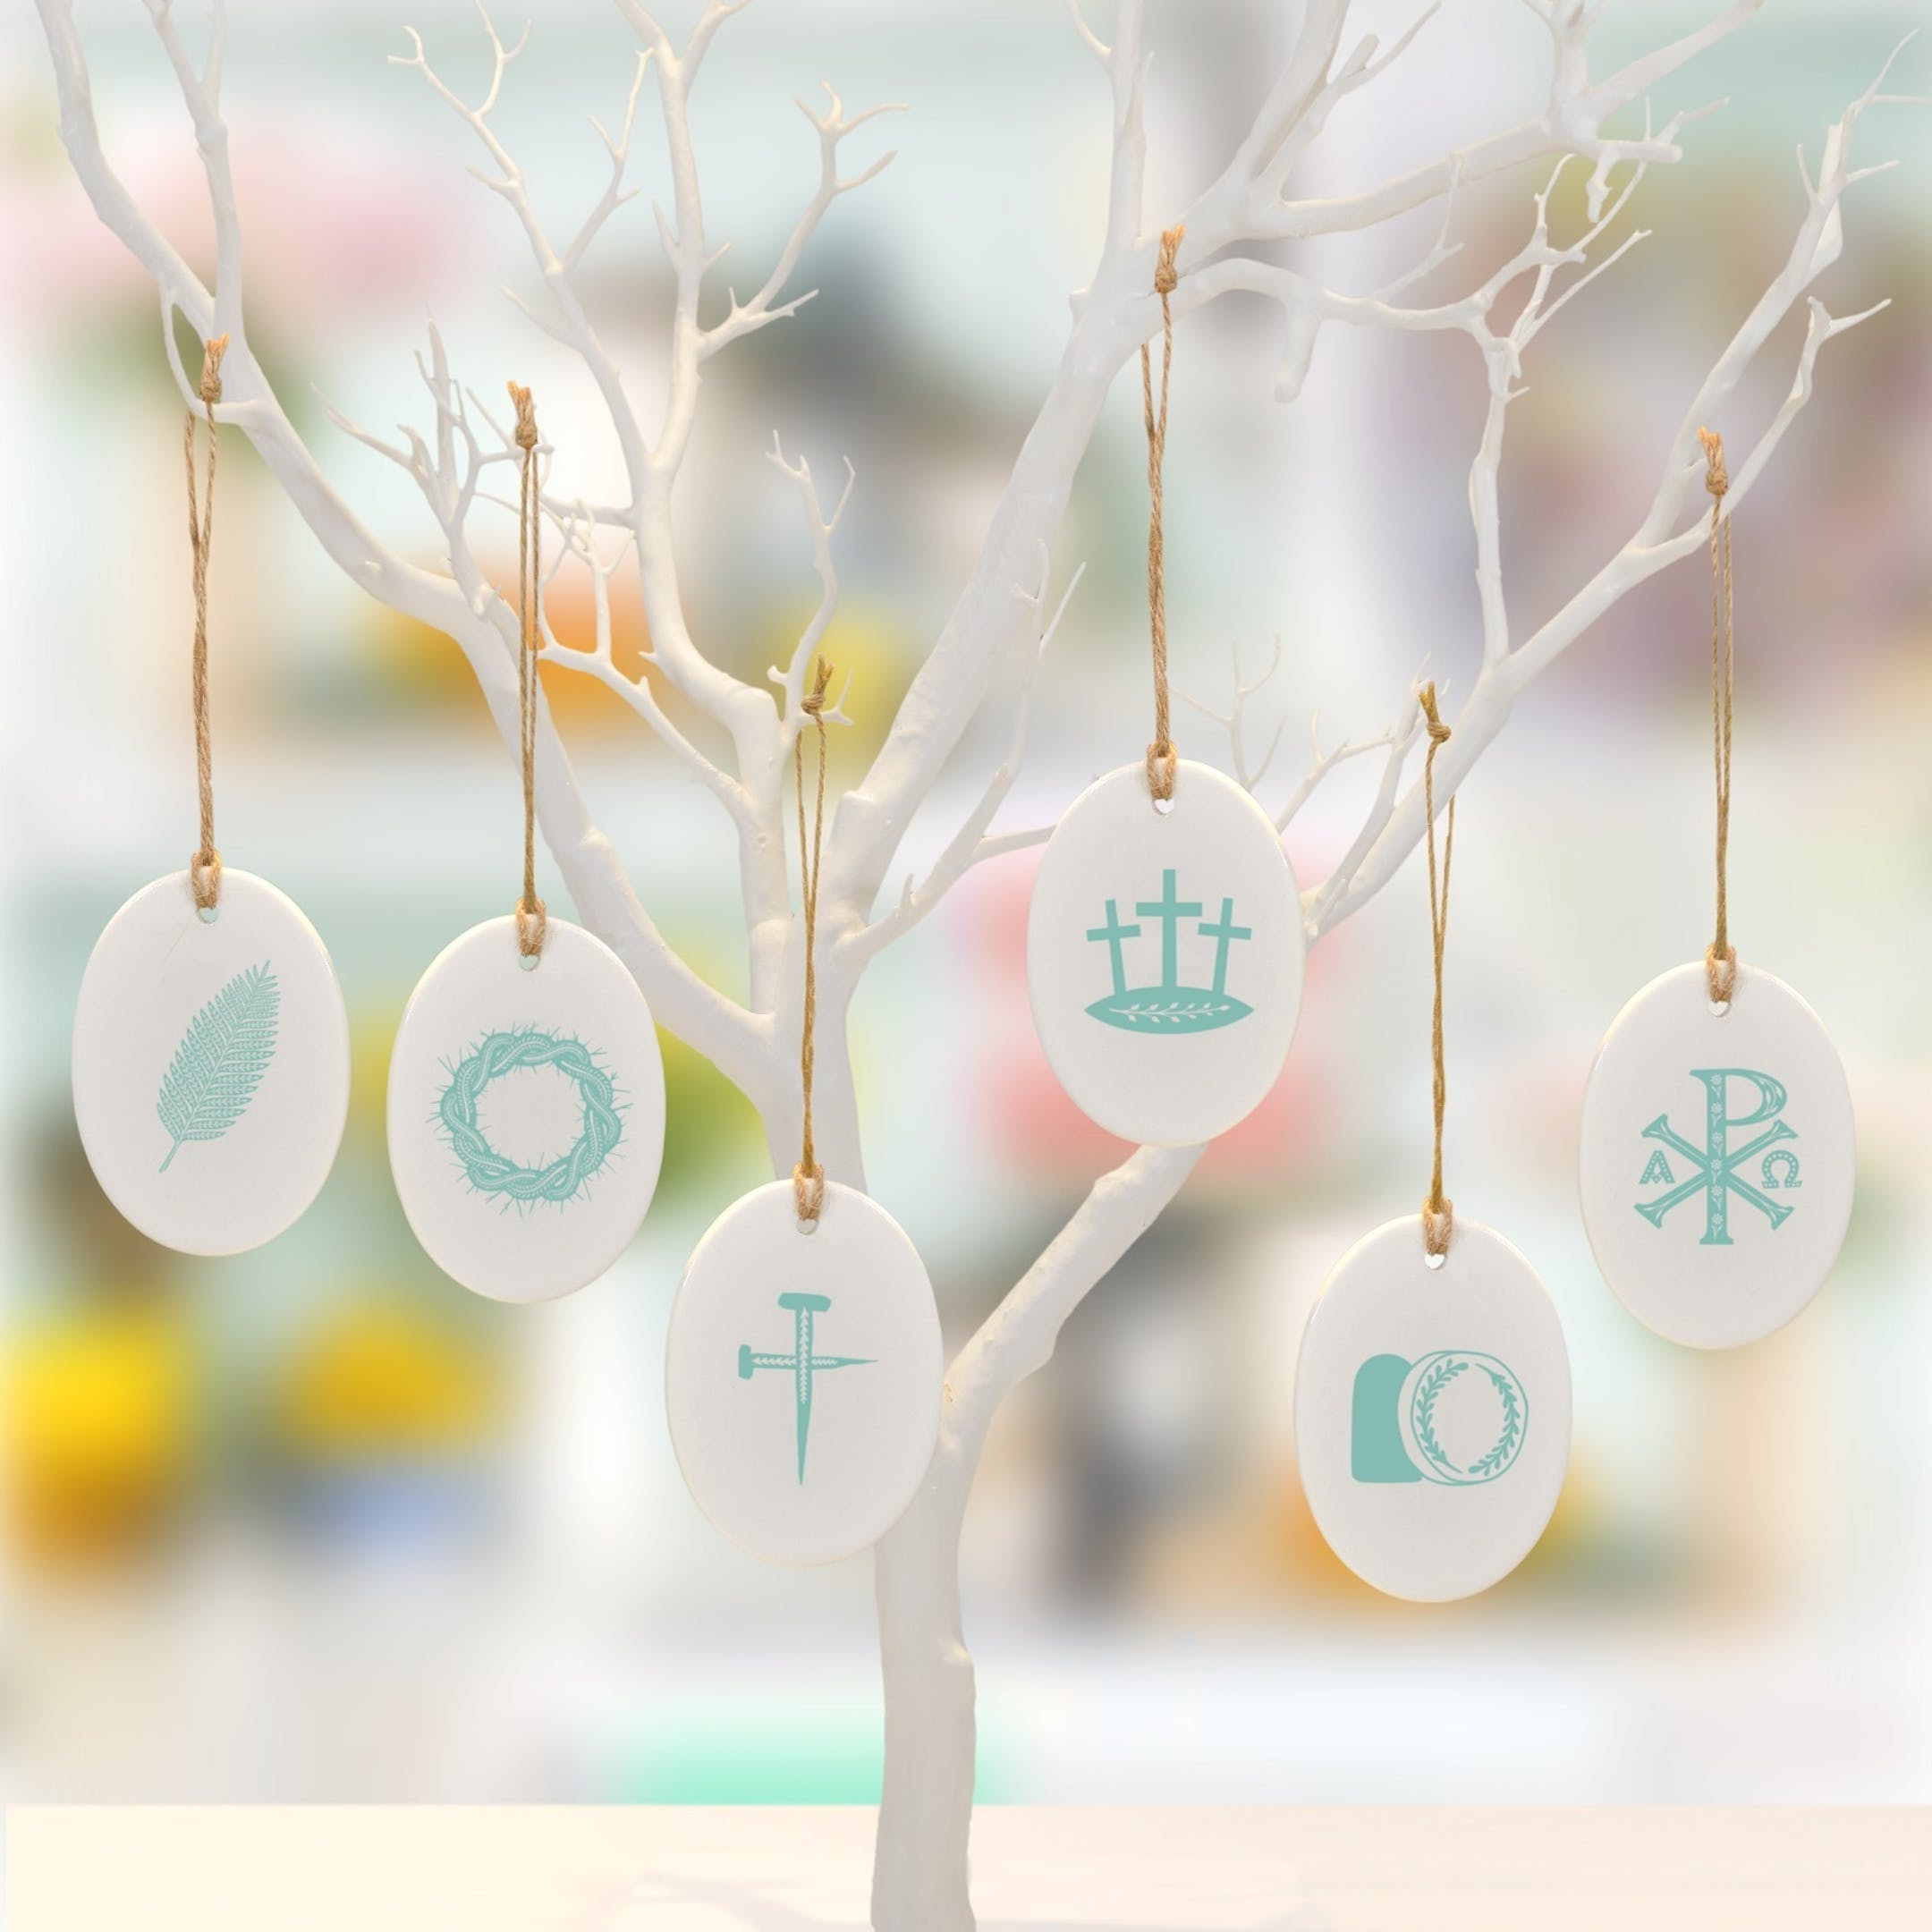 Teal Ceramic Folksy Easter Decorations by Frog and Gnome at Cheerfully Given